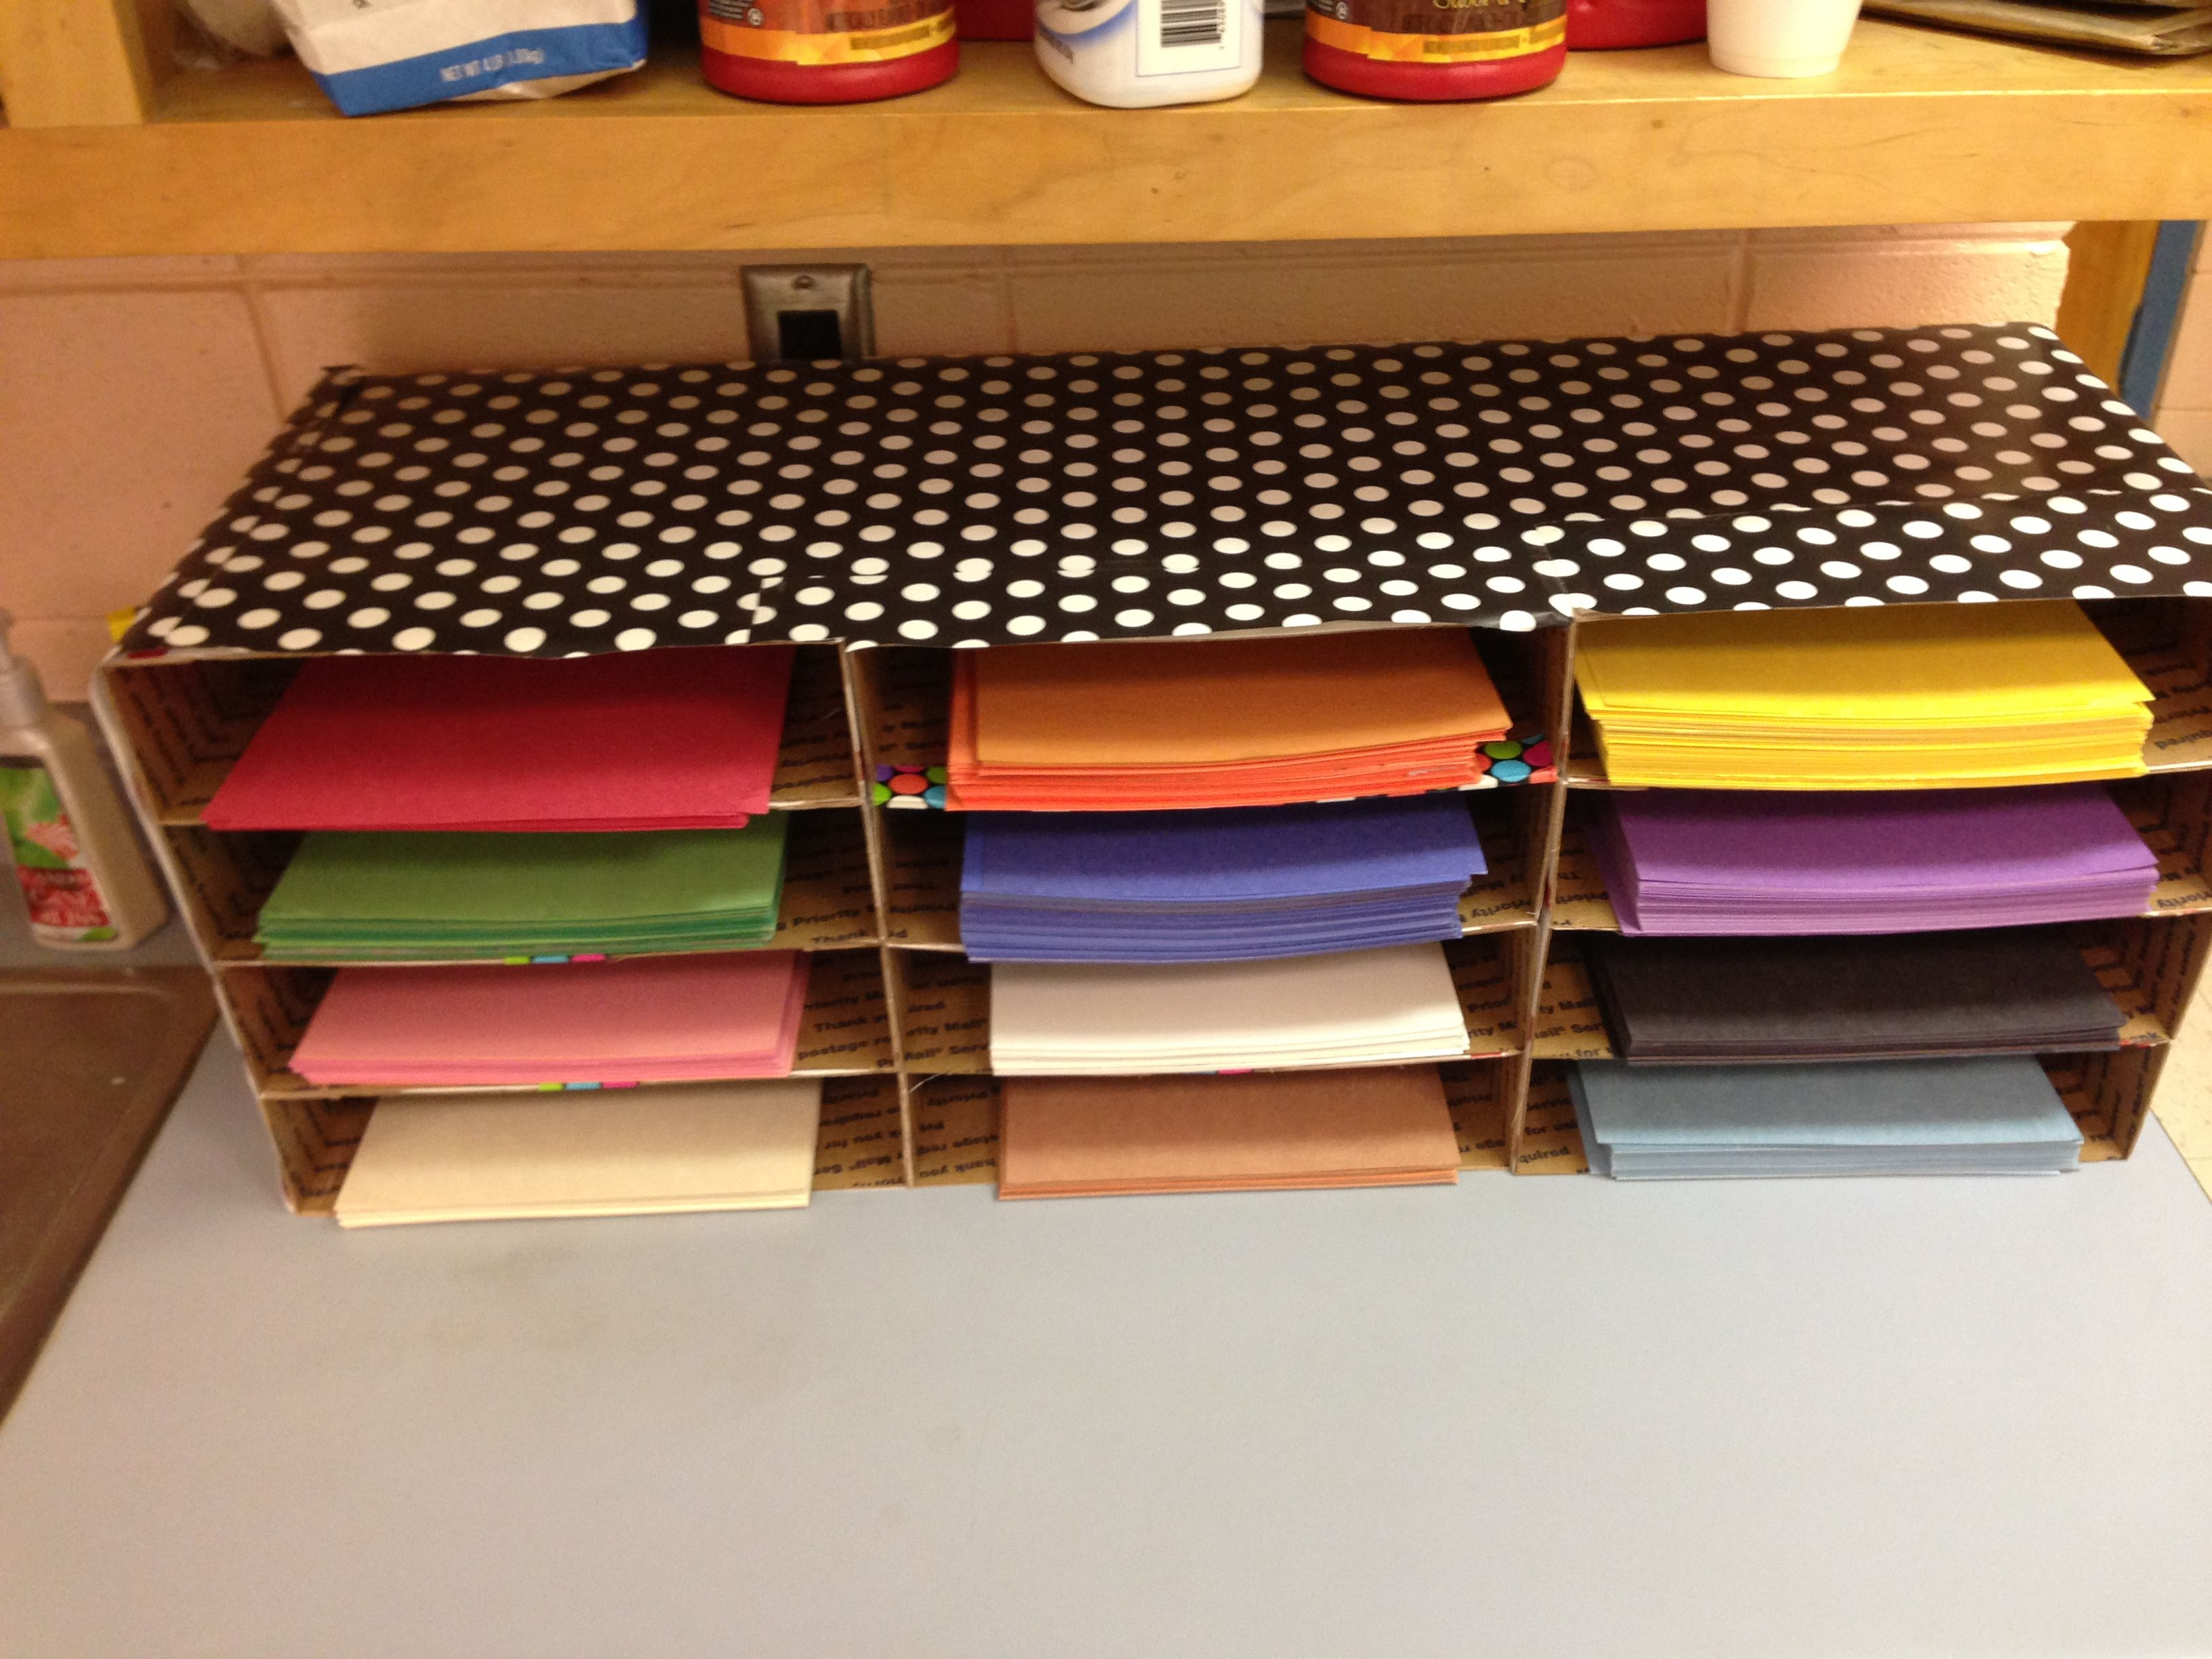 Homemade Construction Paper Sorter Made From Flat Rate Usps Boxes Duct Tape And Wrapping Storage Diy